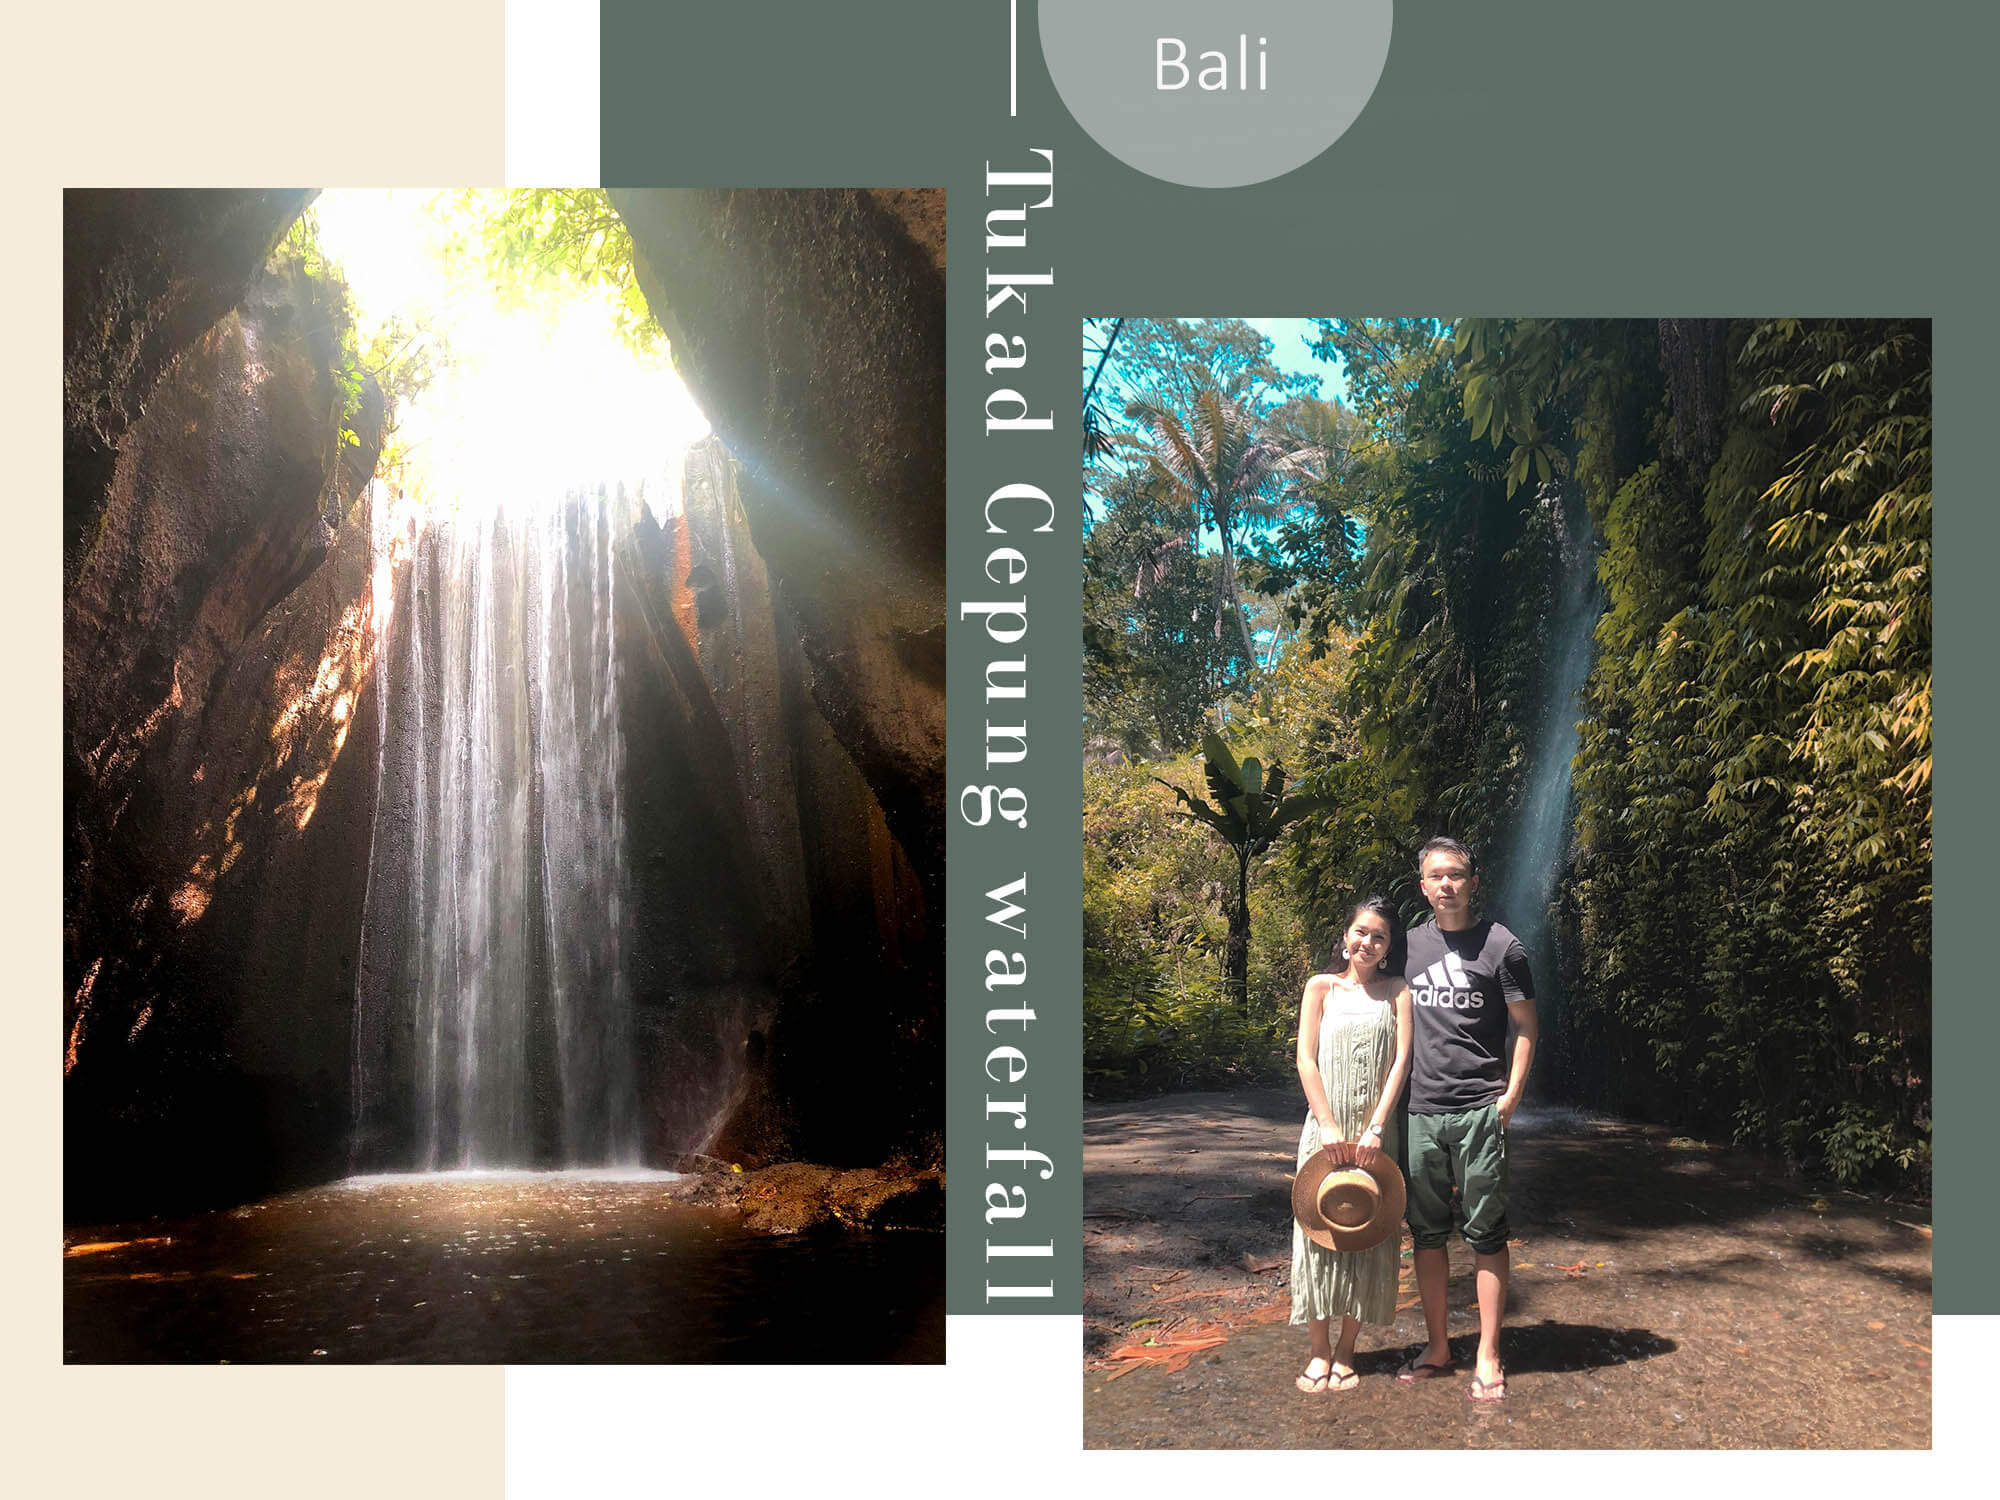 峇里島Bali|太美!是仙境入口?Tukad Cepung Waterfall秘境瀑布探索&注意事項